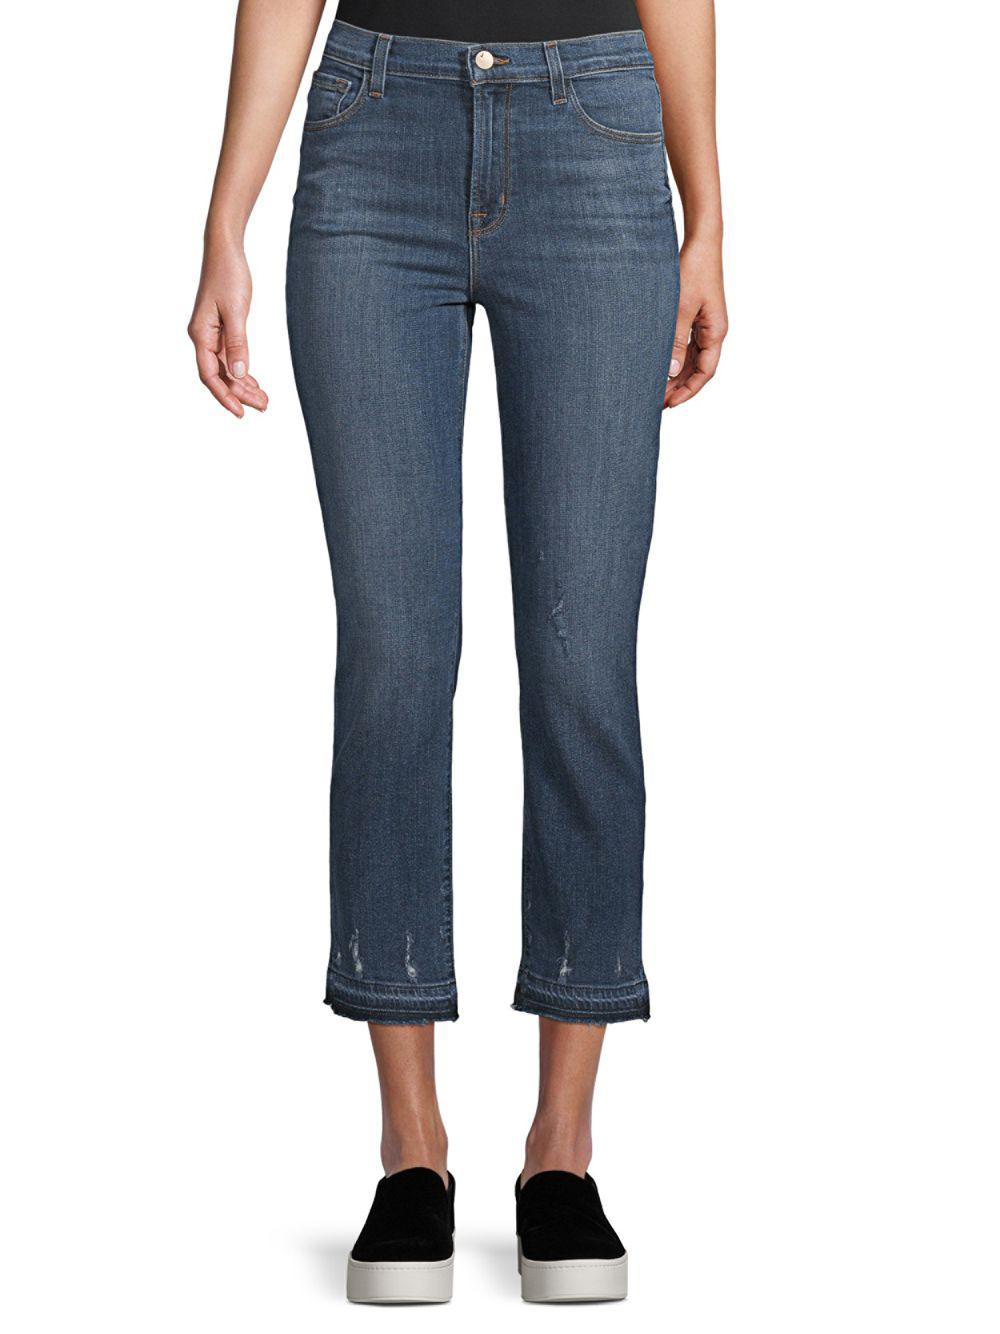 d23003ab69c8 Lyst - J Brand Ruby Distressed High-rise Cropped Jeans in Blue ...